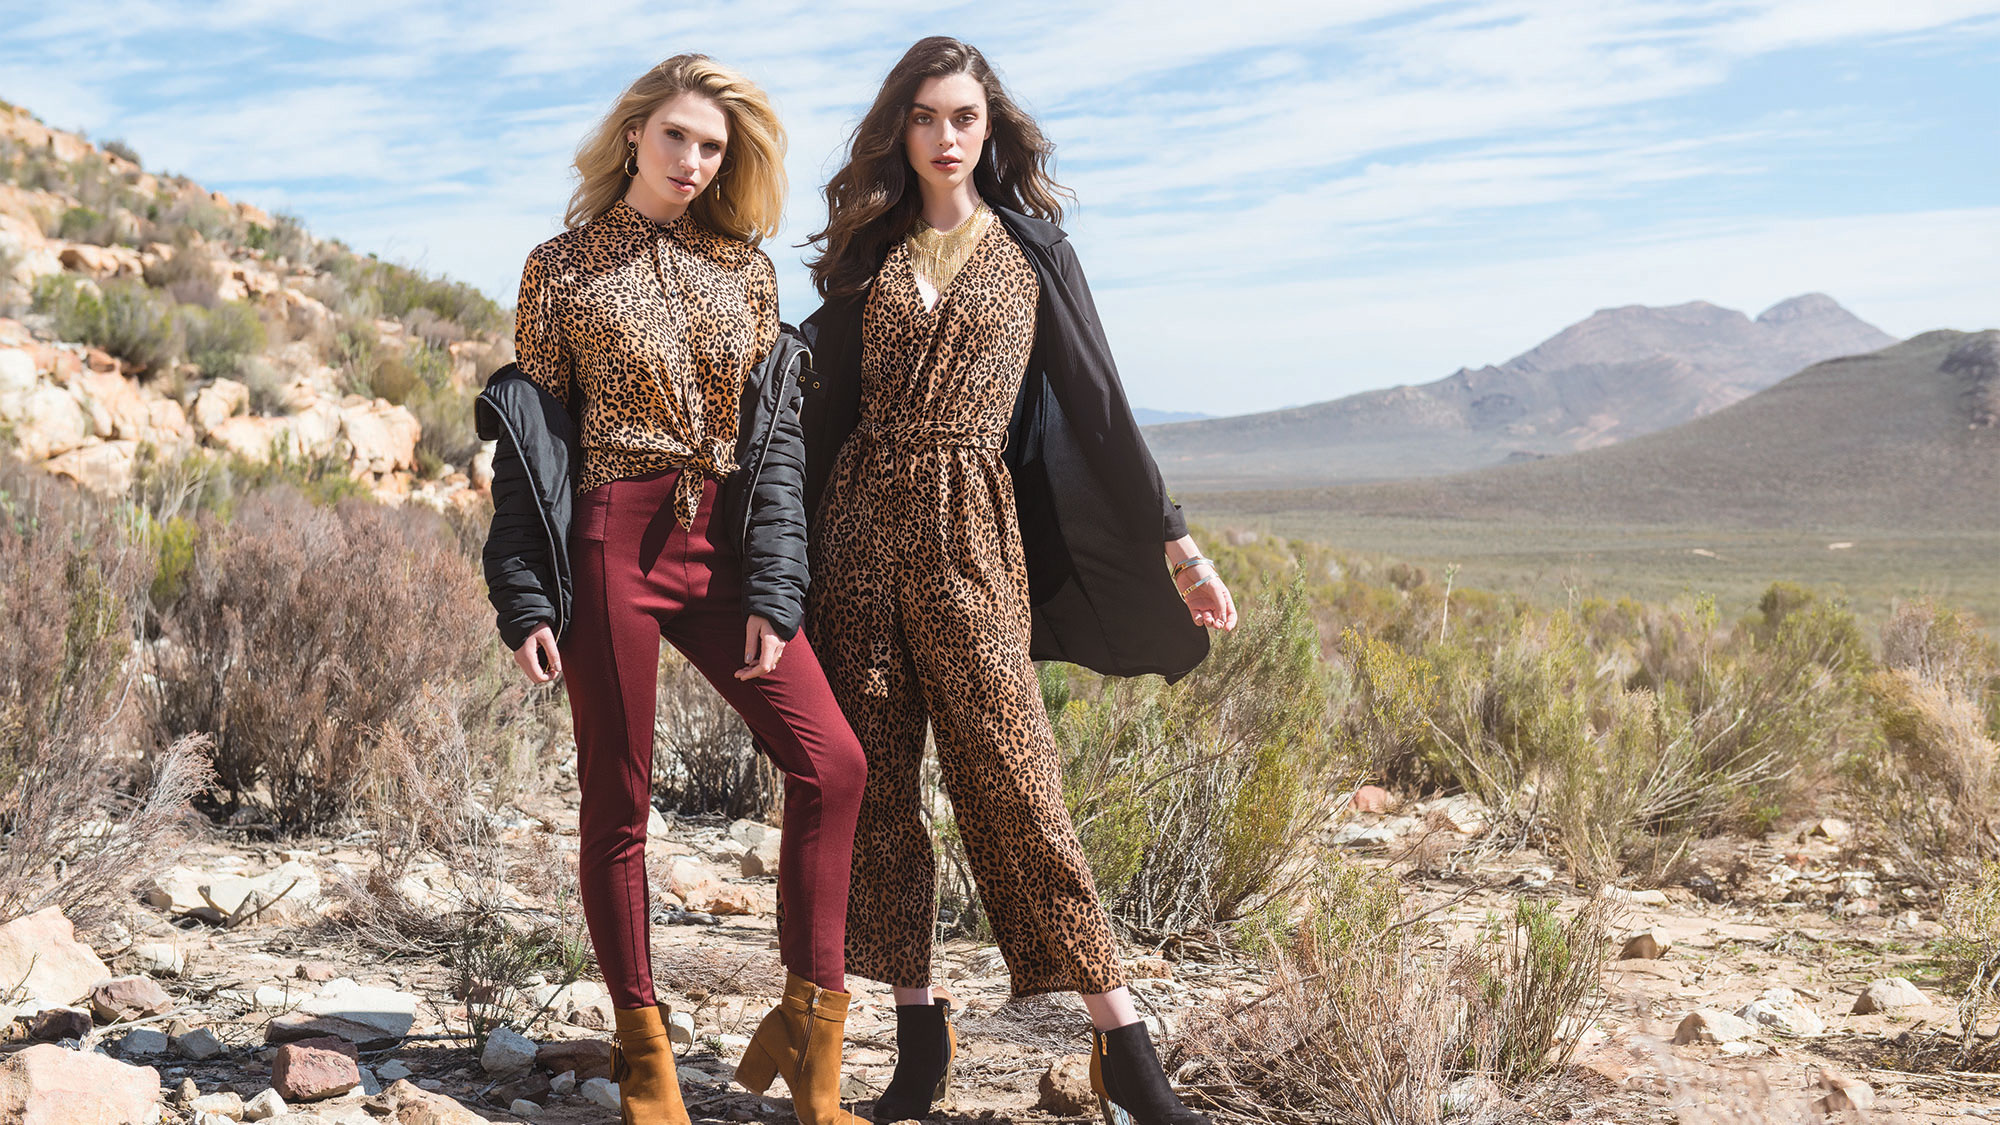 LEOPARD PRINT: THE TIMELESS CLASSIC